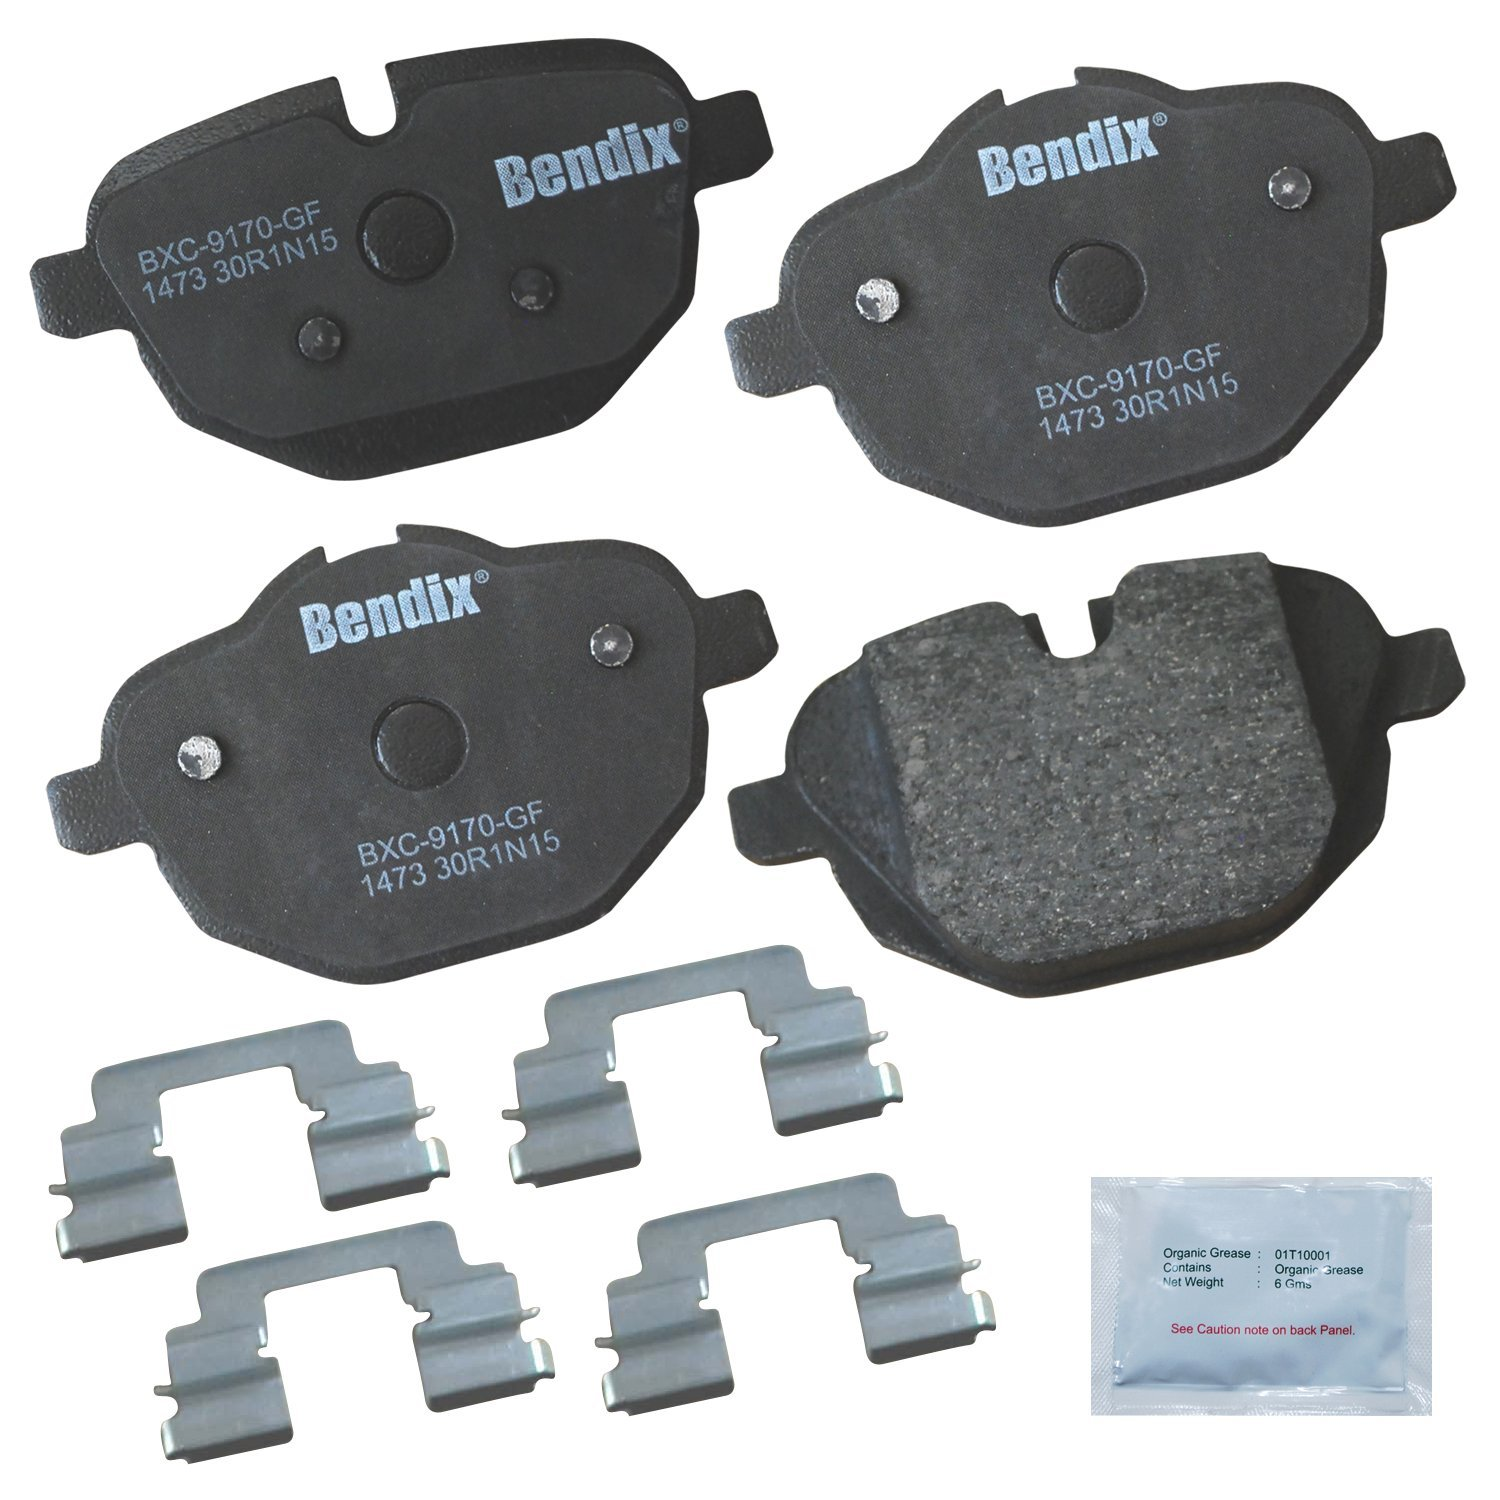 with Installation Hardware Rear Bendix Premium Copper Free CFC1473 Premium Copper Free Ceramic Brake Pad